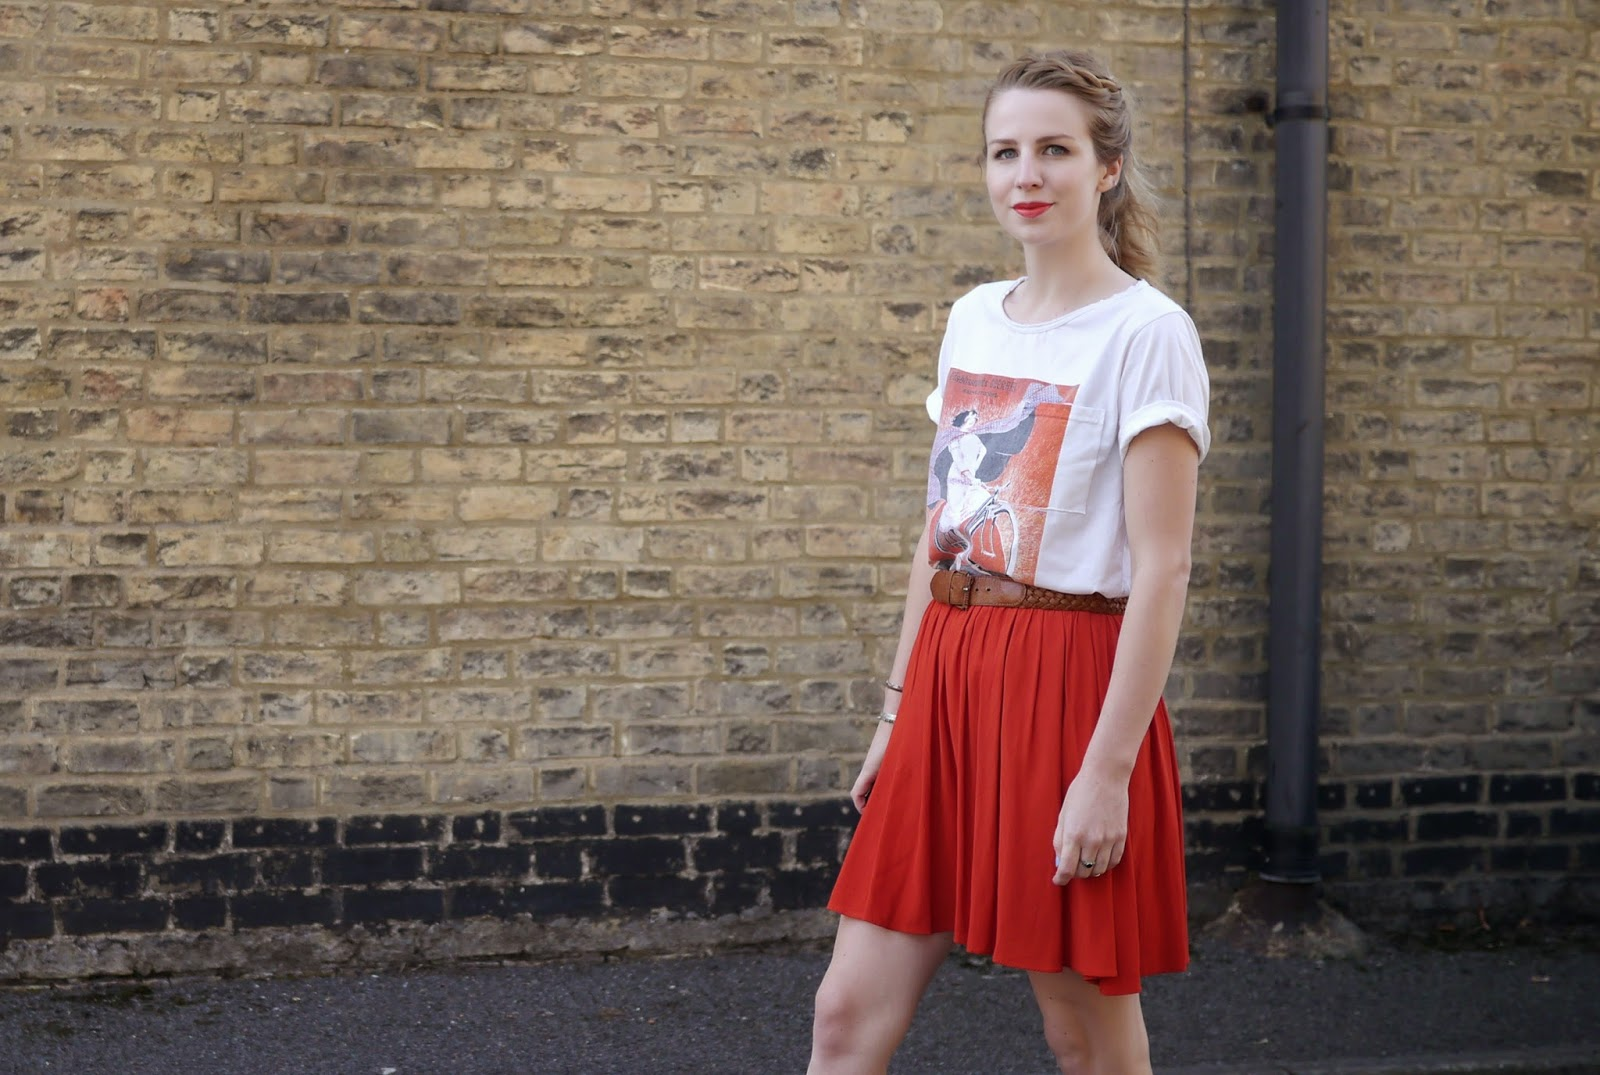 Topshop Red Flippy Skirt with Vintage Plait Belt & Graphic Print Tshirt